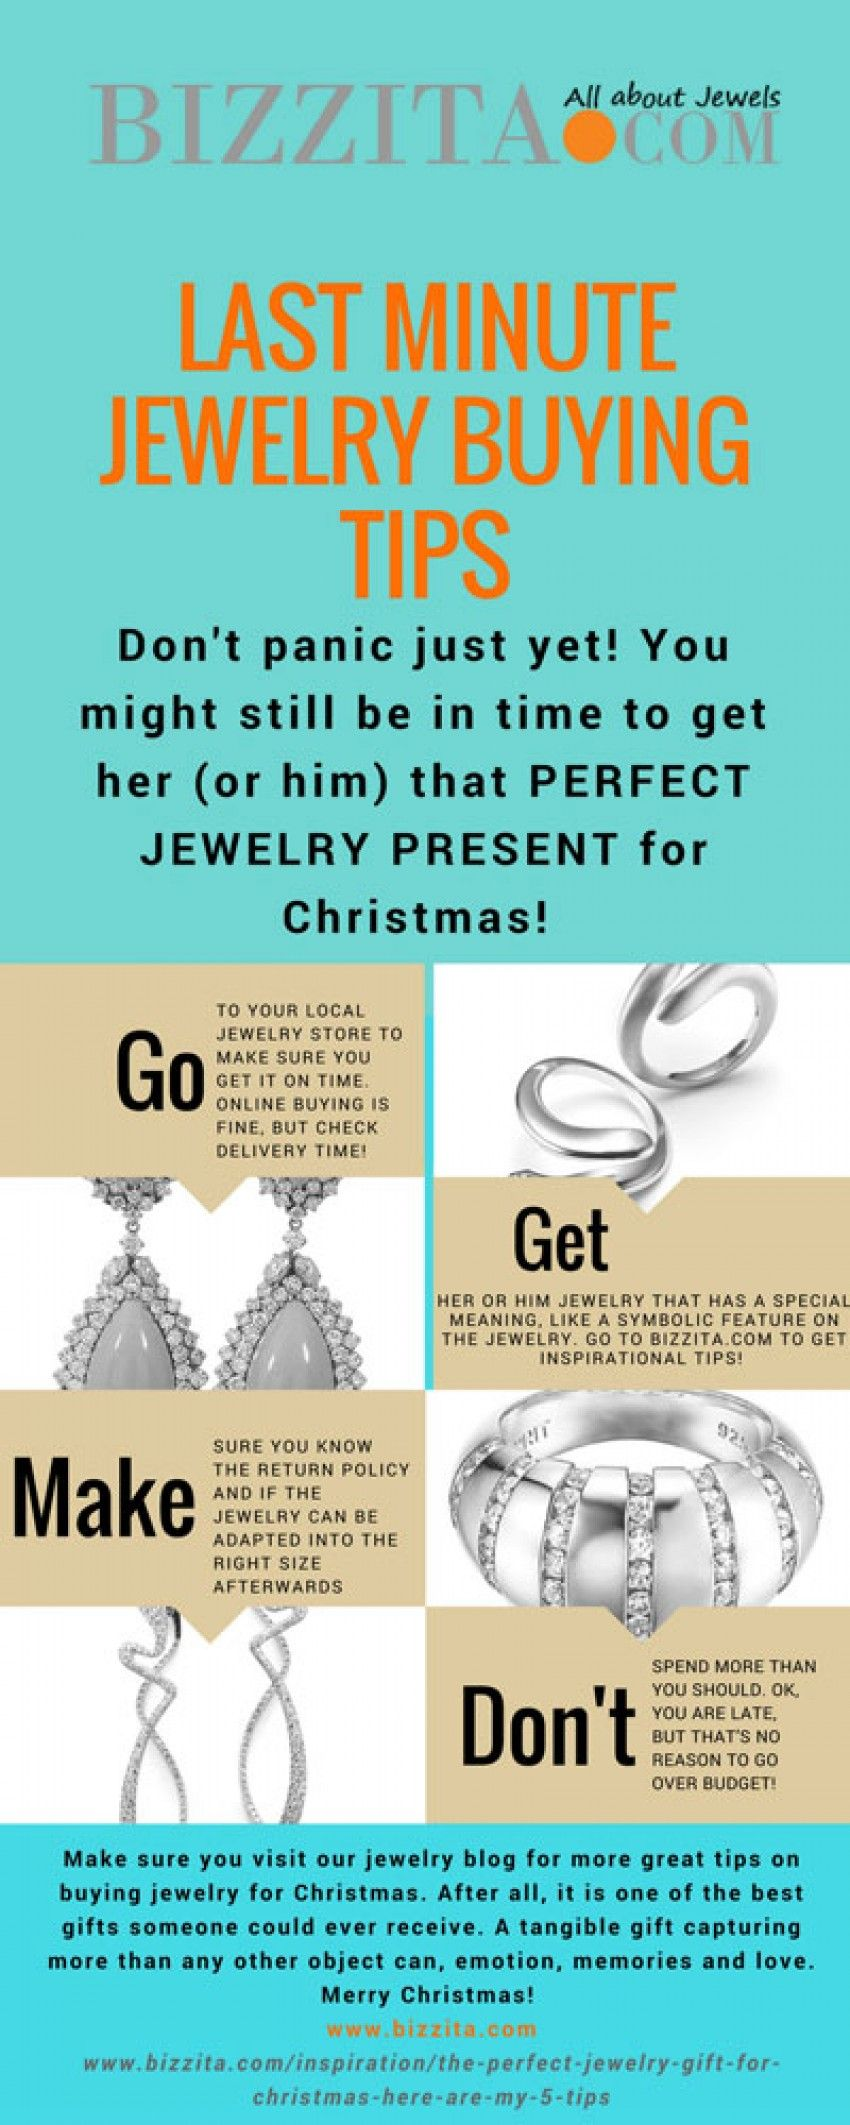 Last minute jewelry buying tips